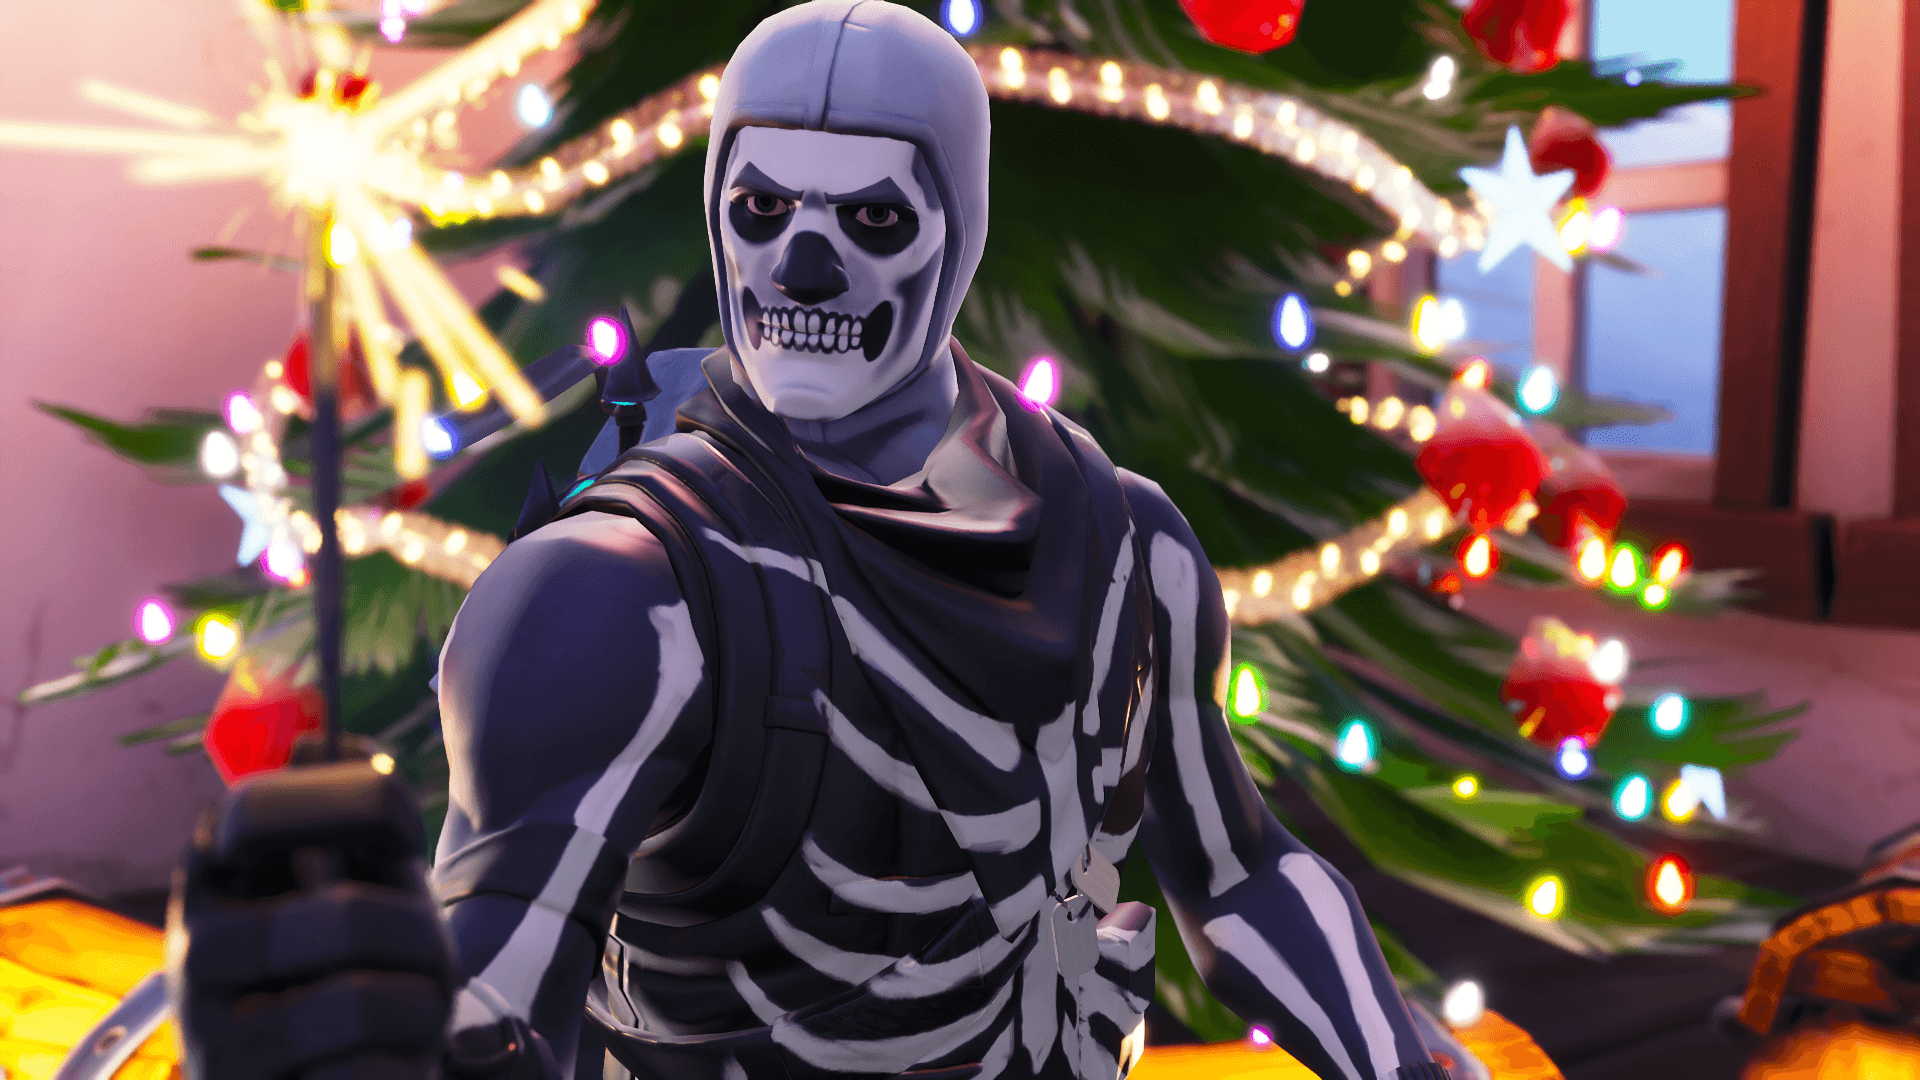 1920x1080 Skull Trooper Wallpaper Season 7 - Fortnite Battle Royale Wallpaper